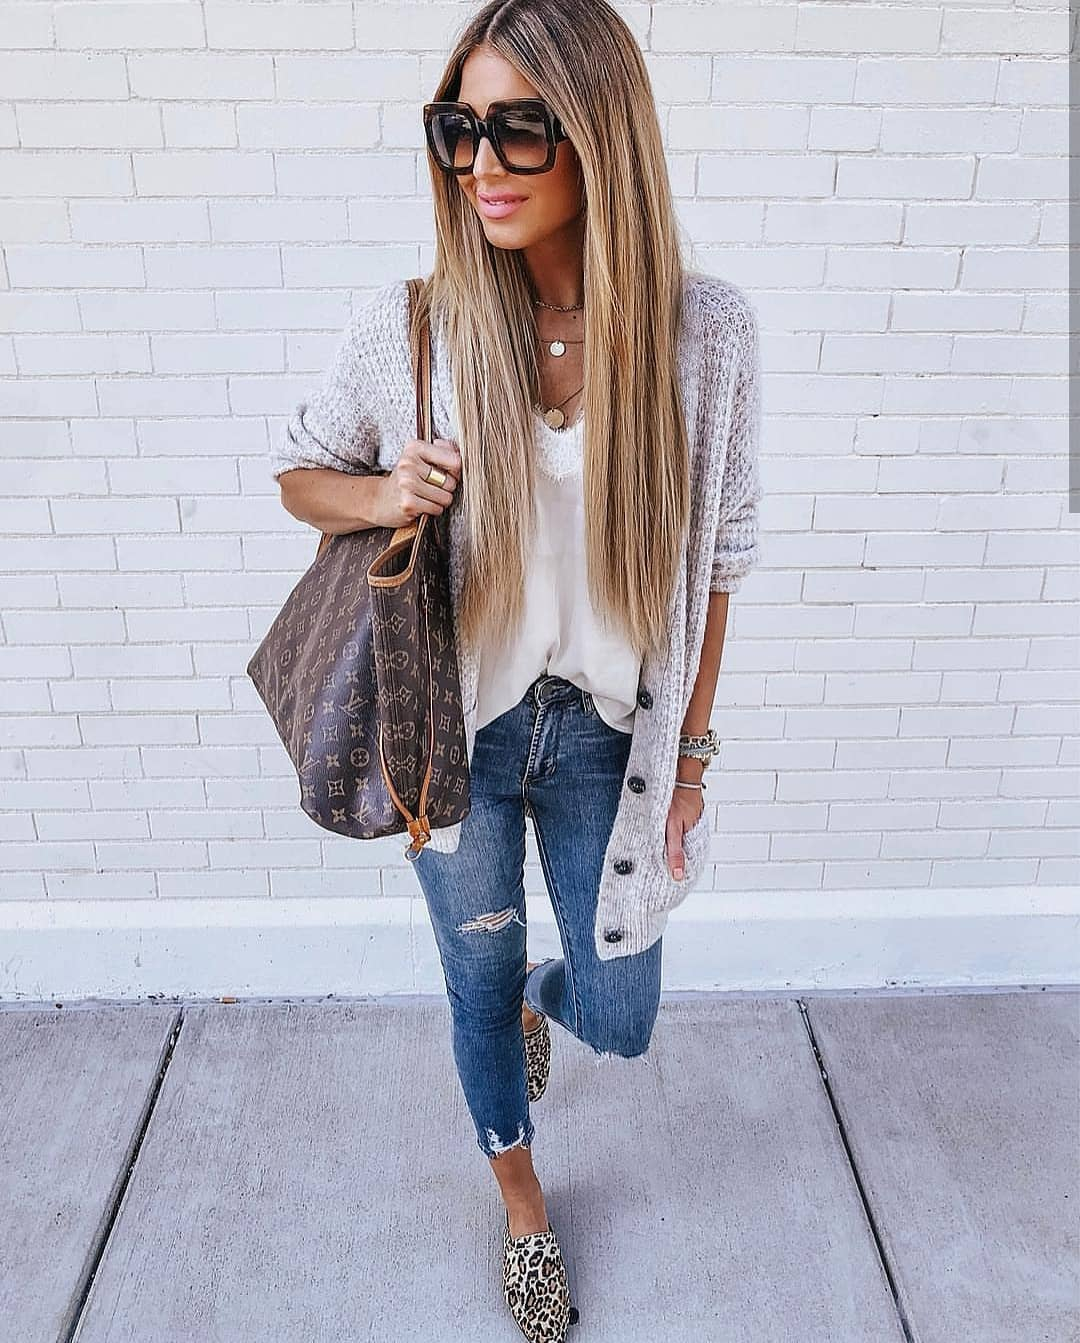 Lightweight Long Cardigan With White Slip Tank Top And Jeans  For Summer 2021